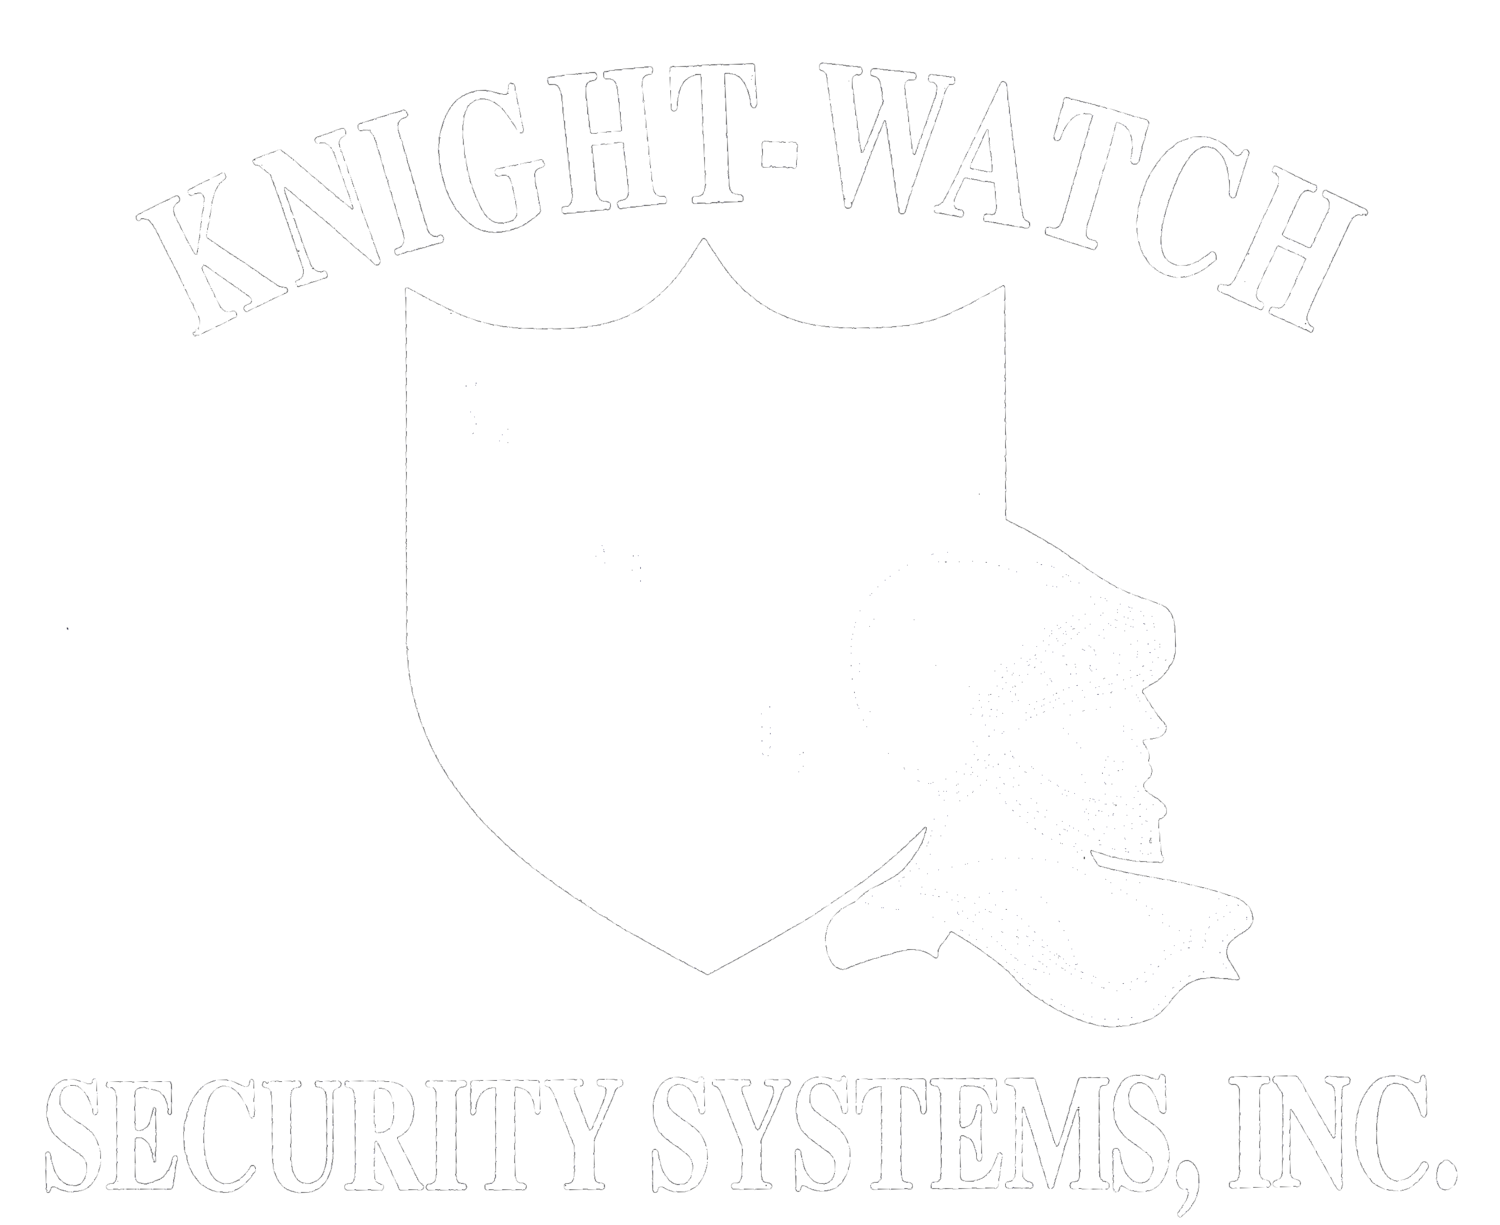 Knight-Watch Security